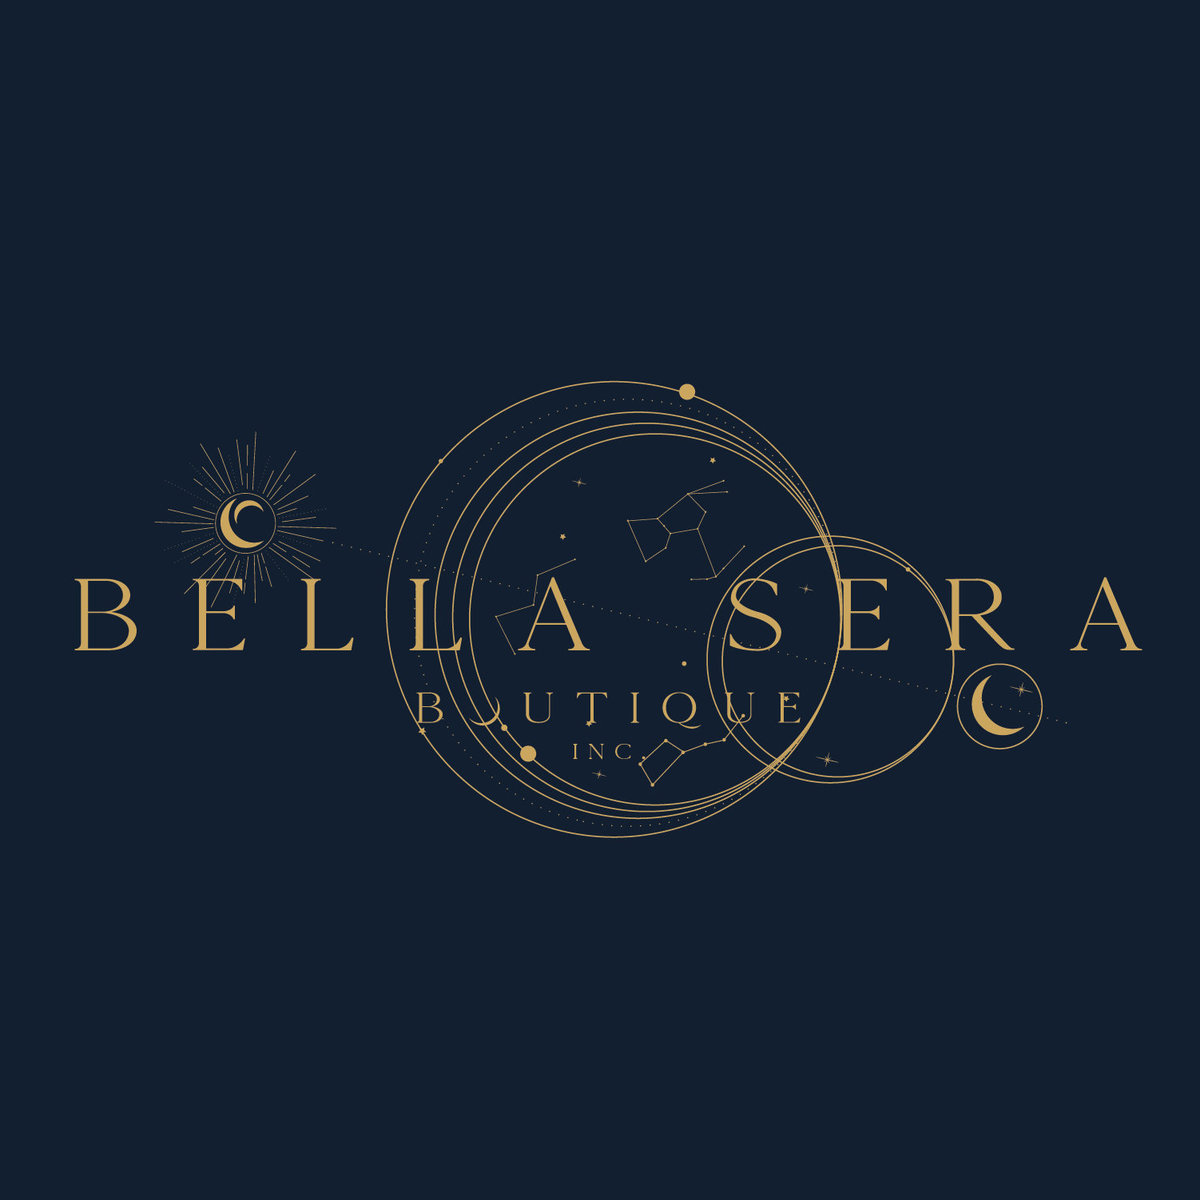 Bella Sera Boutique Brand Design